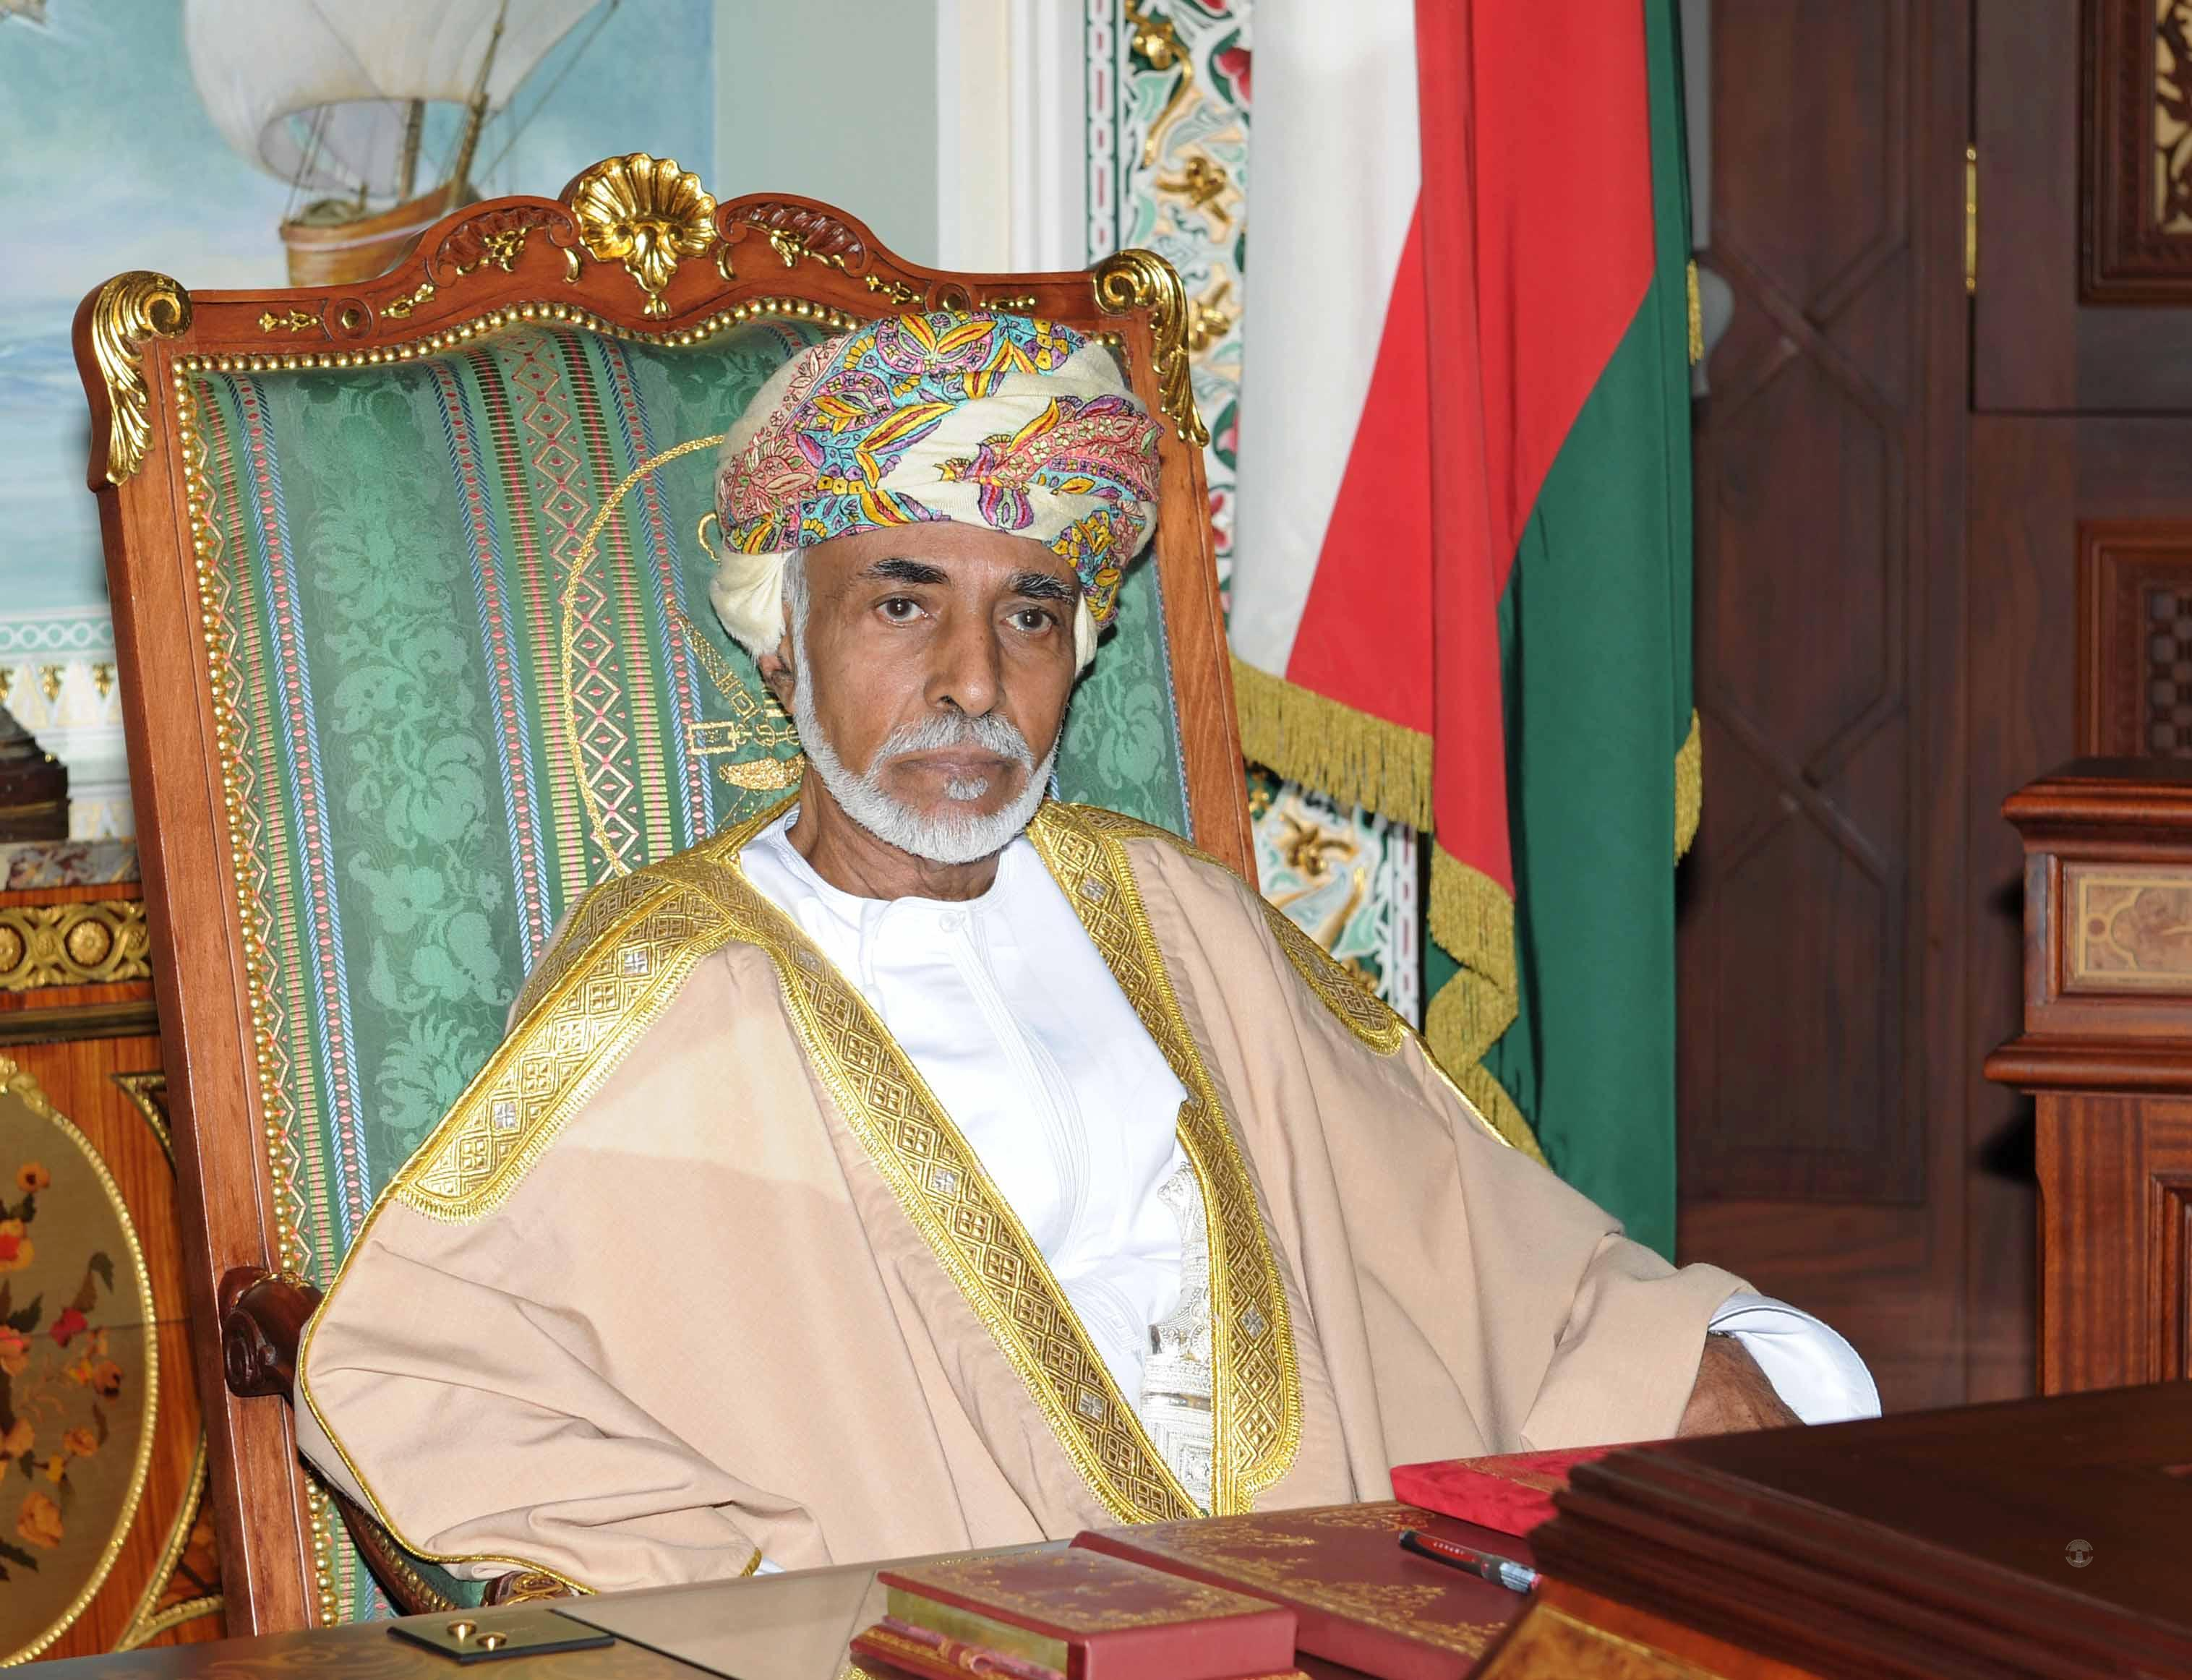 His Majesty Sultan Qaboos sends greetings to Mauritania and Albania